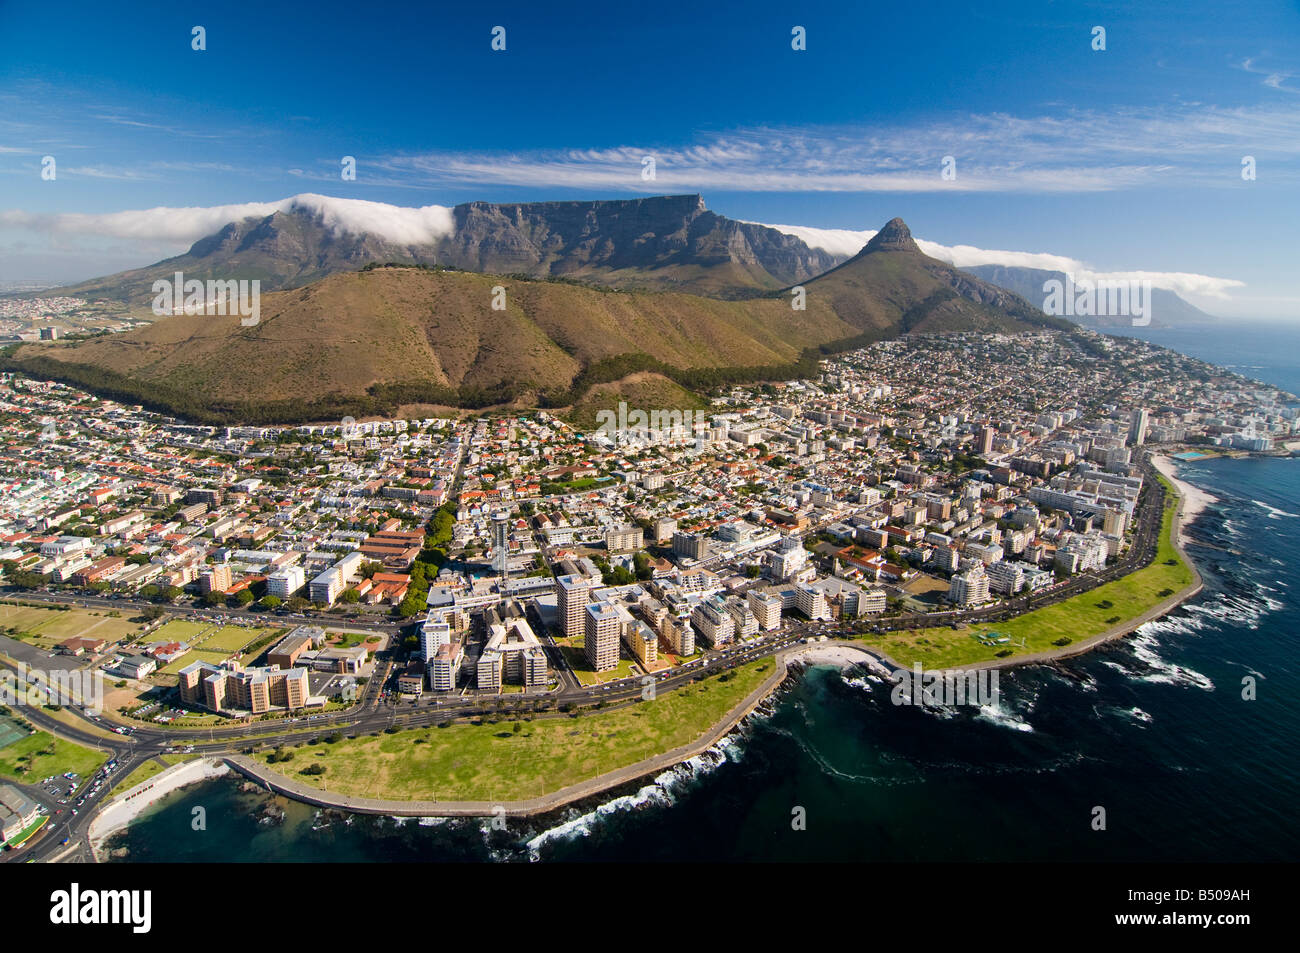 Table Mountain, Cape Town, Western Cape, South Africa - Stock Image